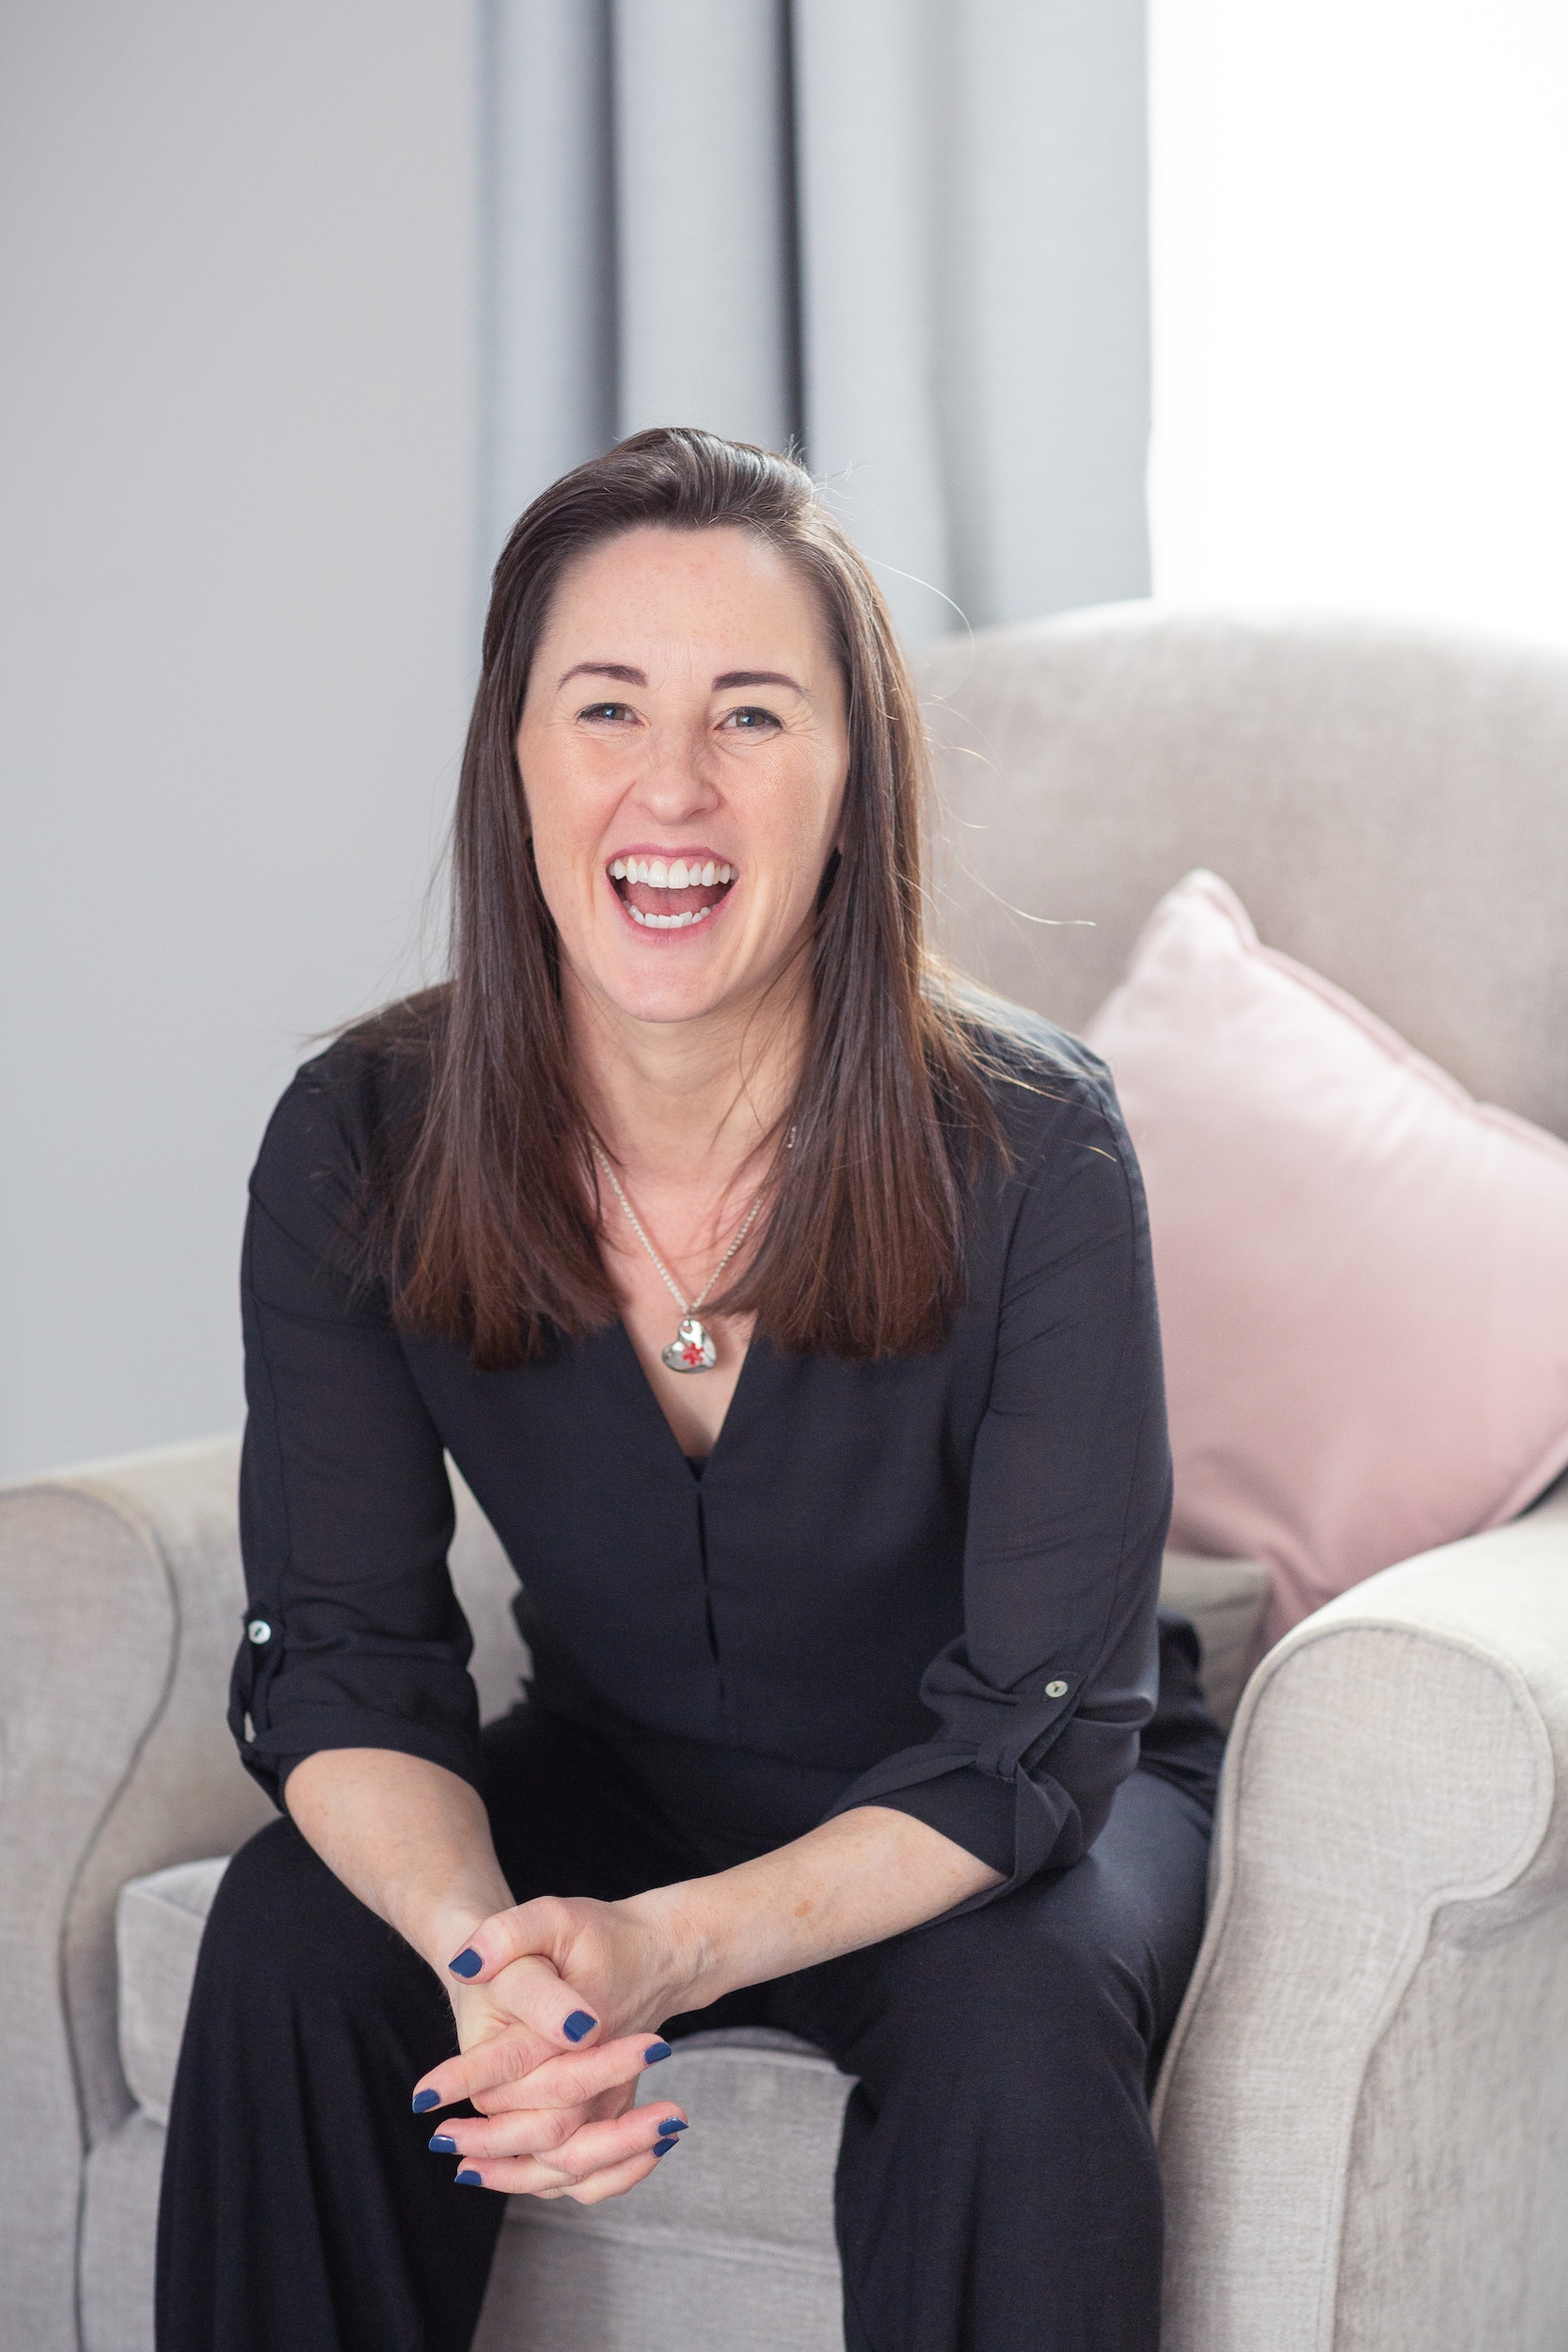 Catherine Gladwyn Recommended Expert Business Mentor Proven Success for Small Service Based Business Owners